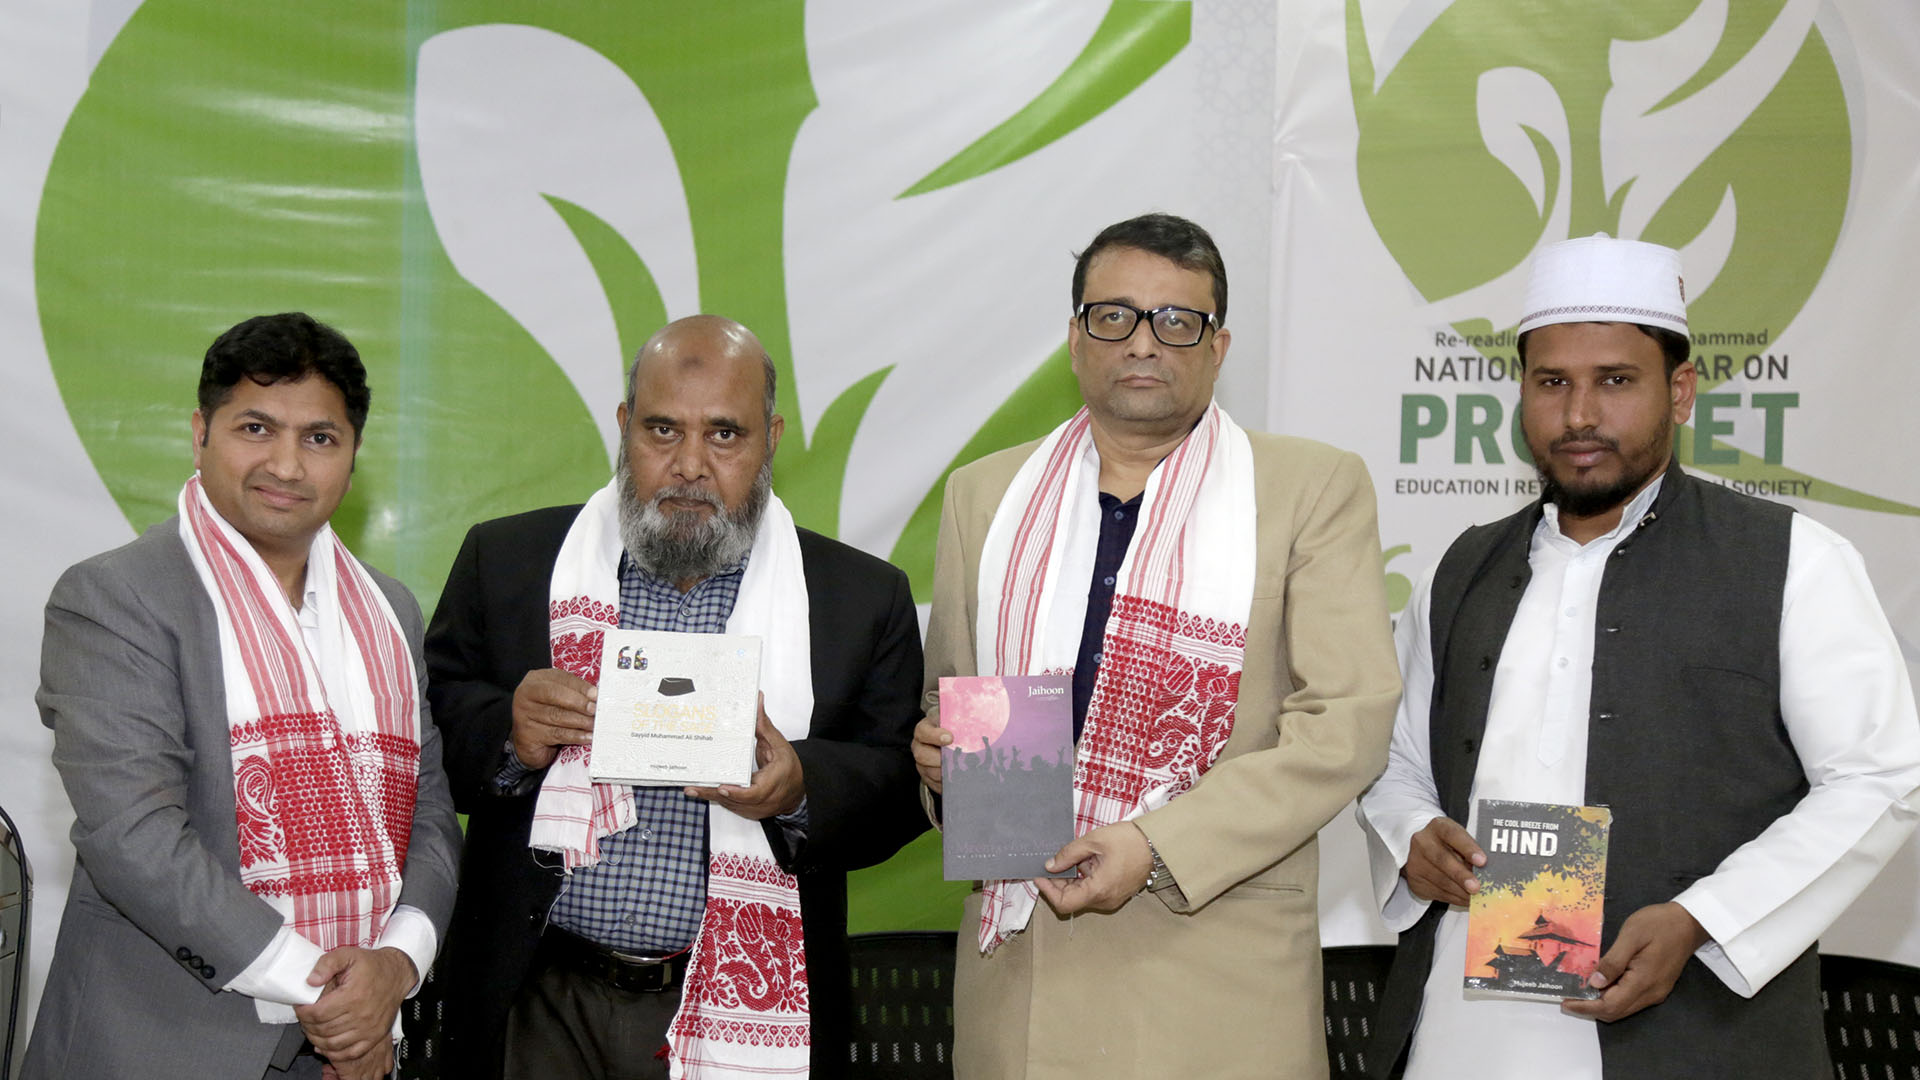 Jaihoon books presented to Cotton University, Assam